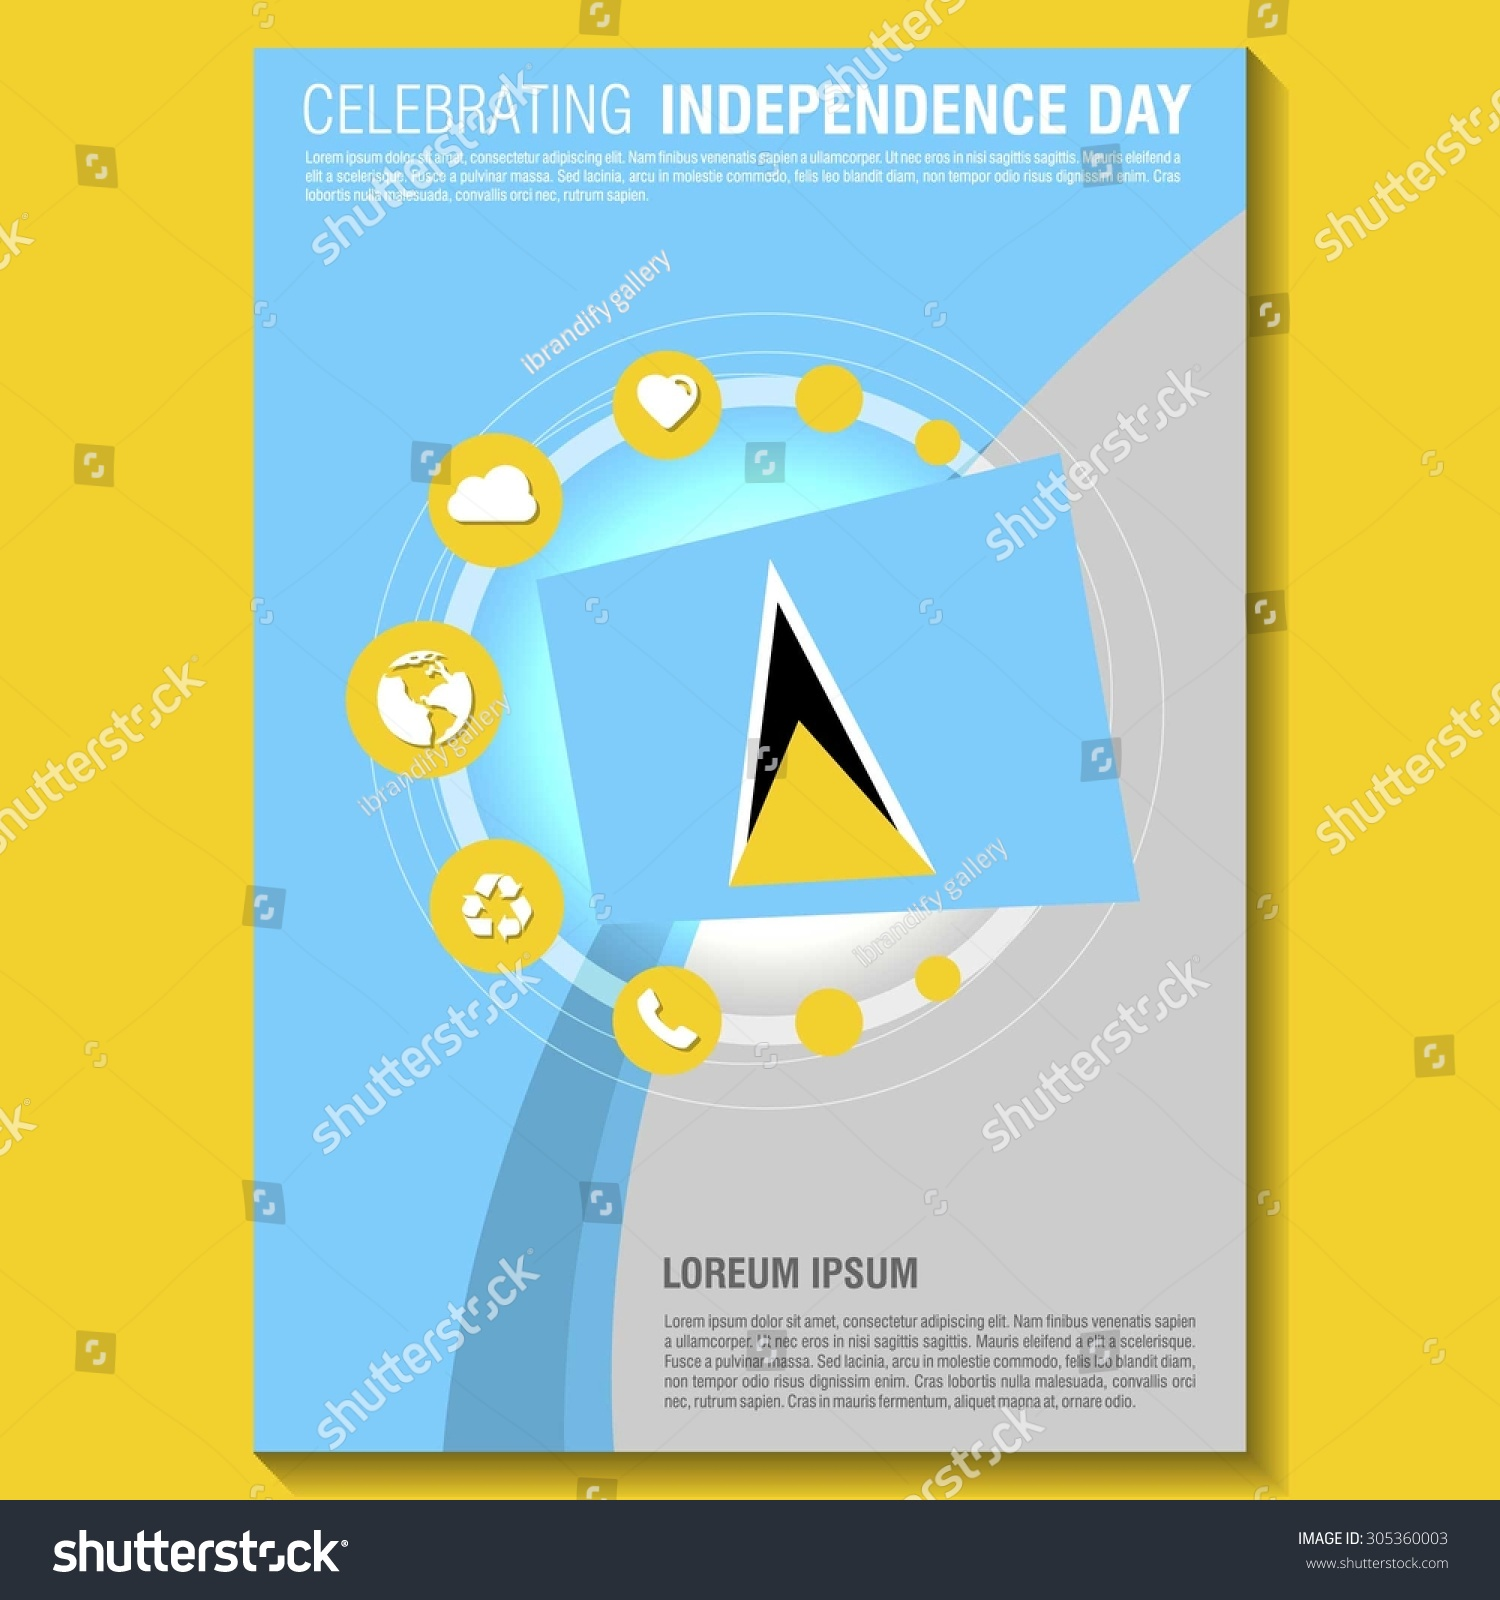 vector saint lucia independence day flyer stock vector  vector saint lucia independence day flyer template creative brochure title page national day leaflet